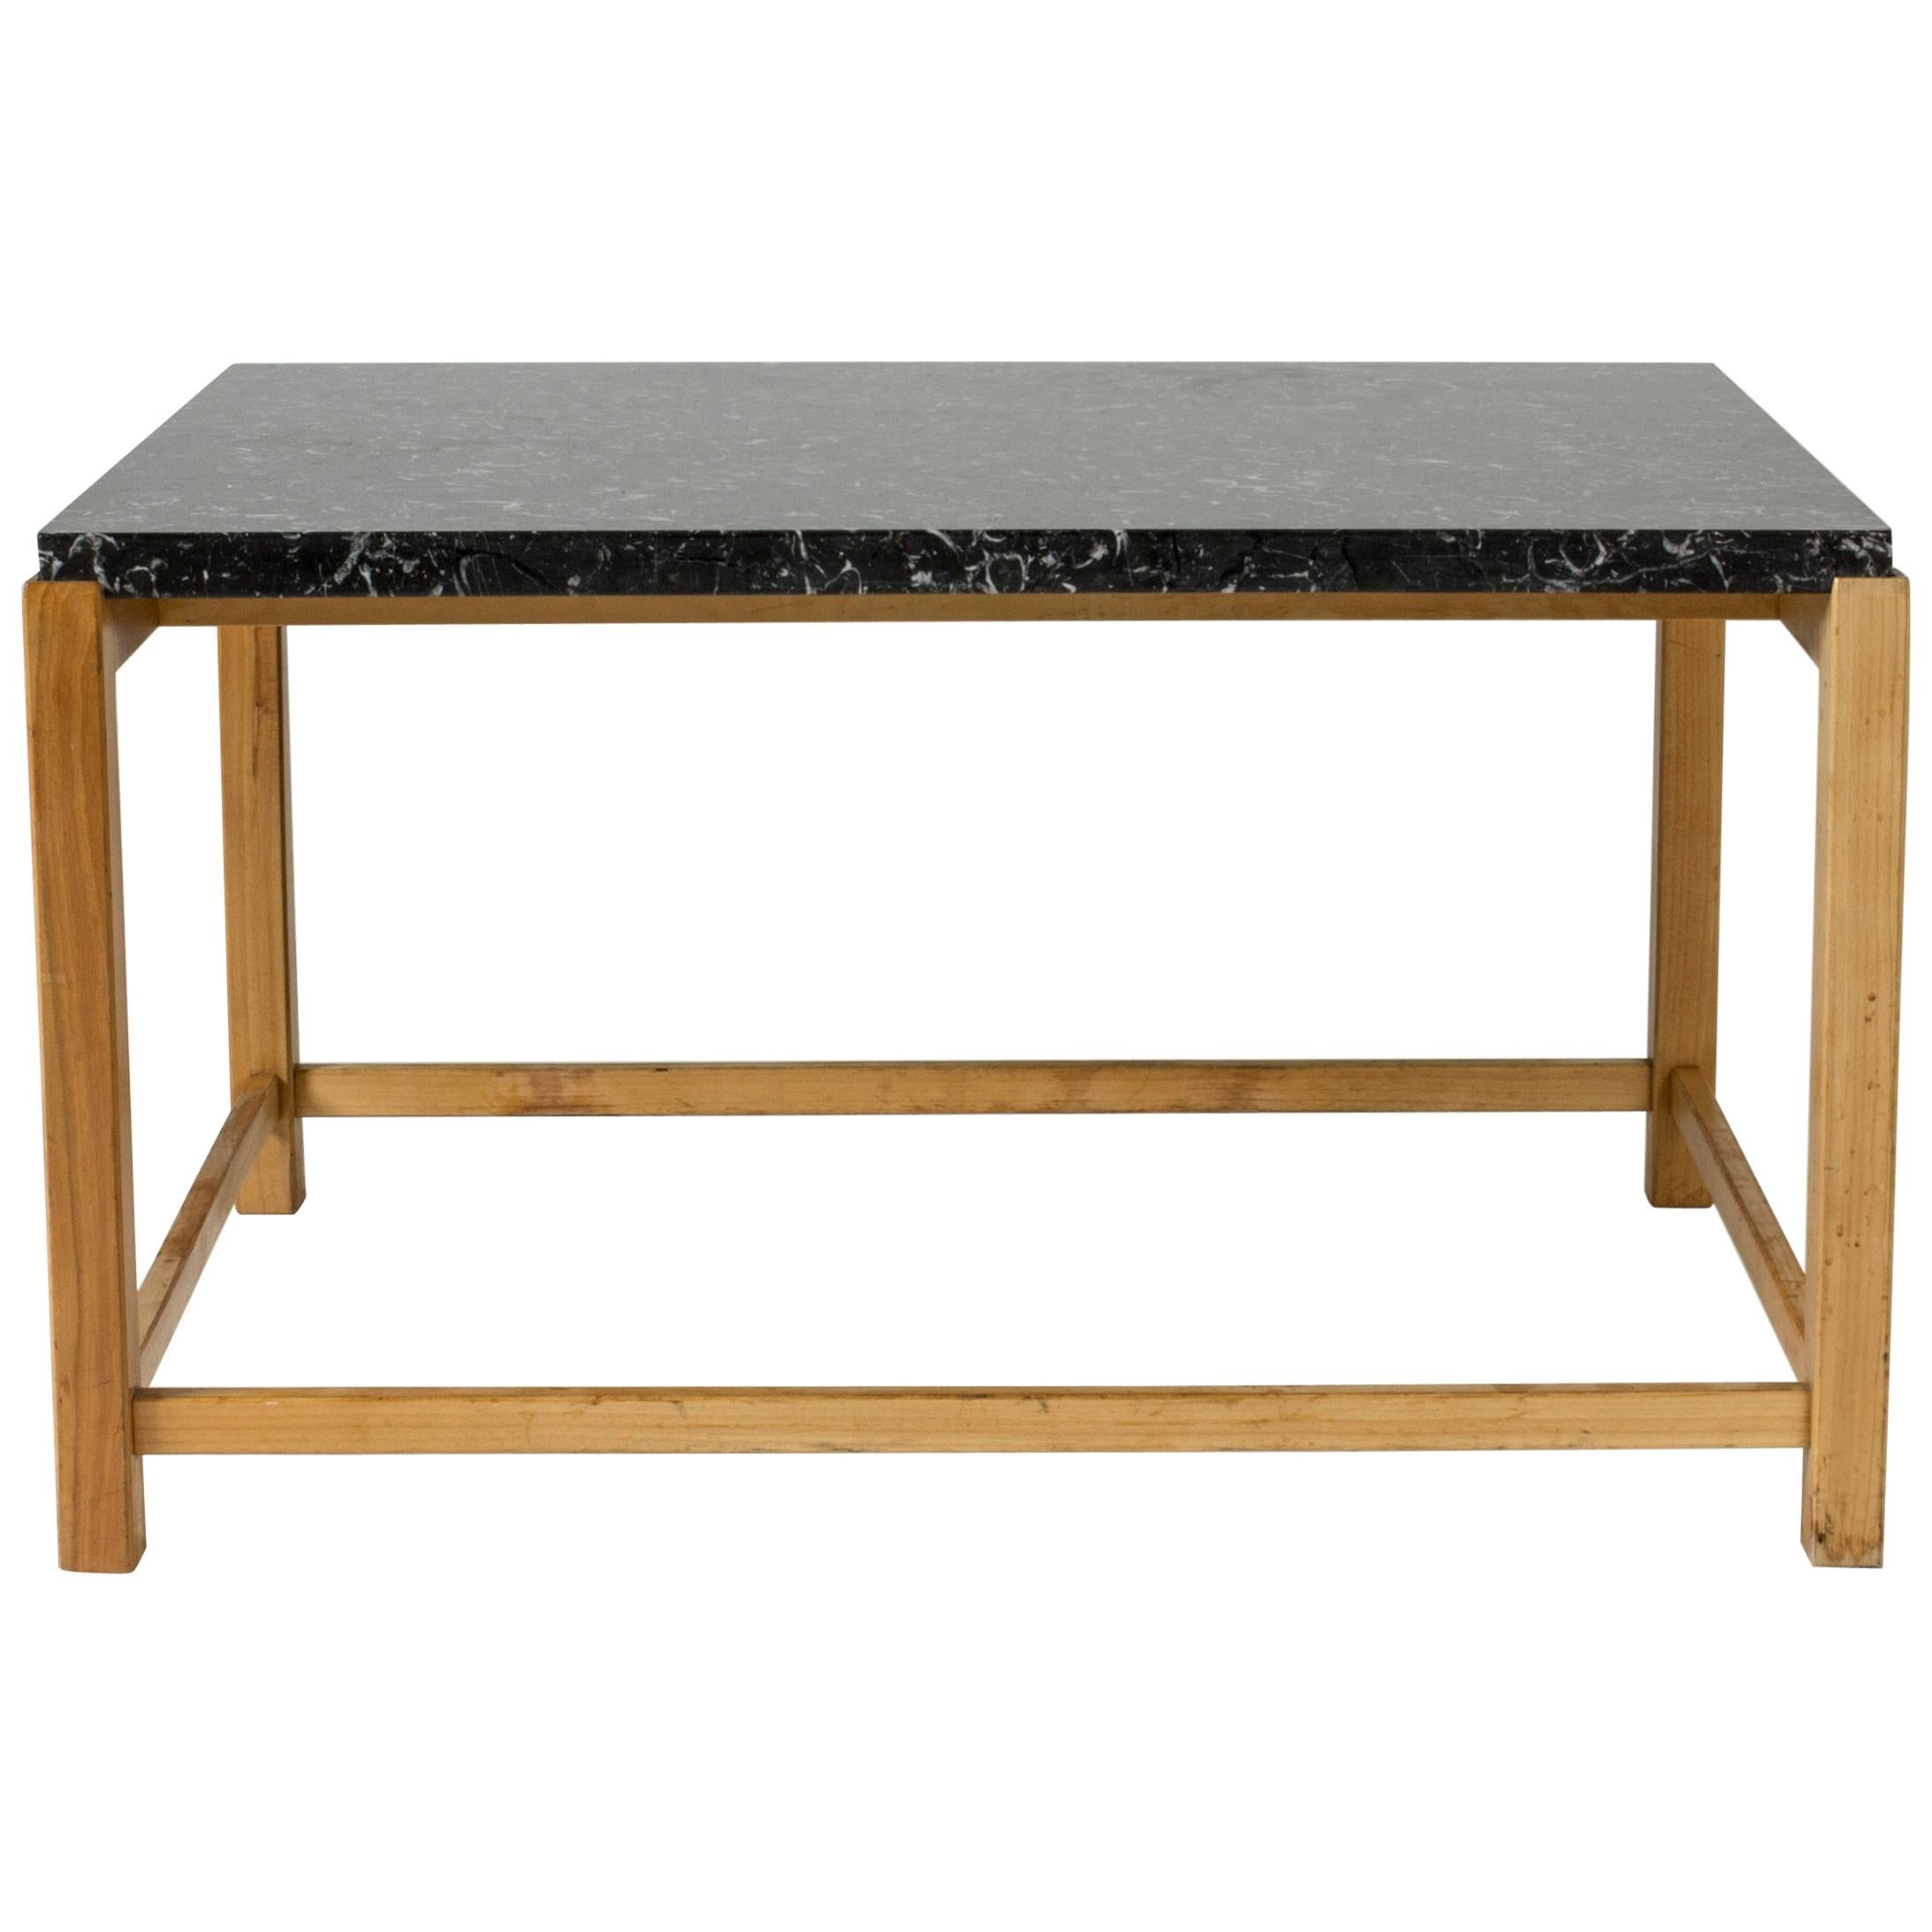 Marble-Top Coffee Table by Carl-Axel Acking for Torsten Schollin, Sweden, 1950s